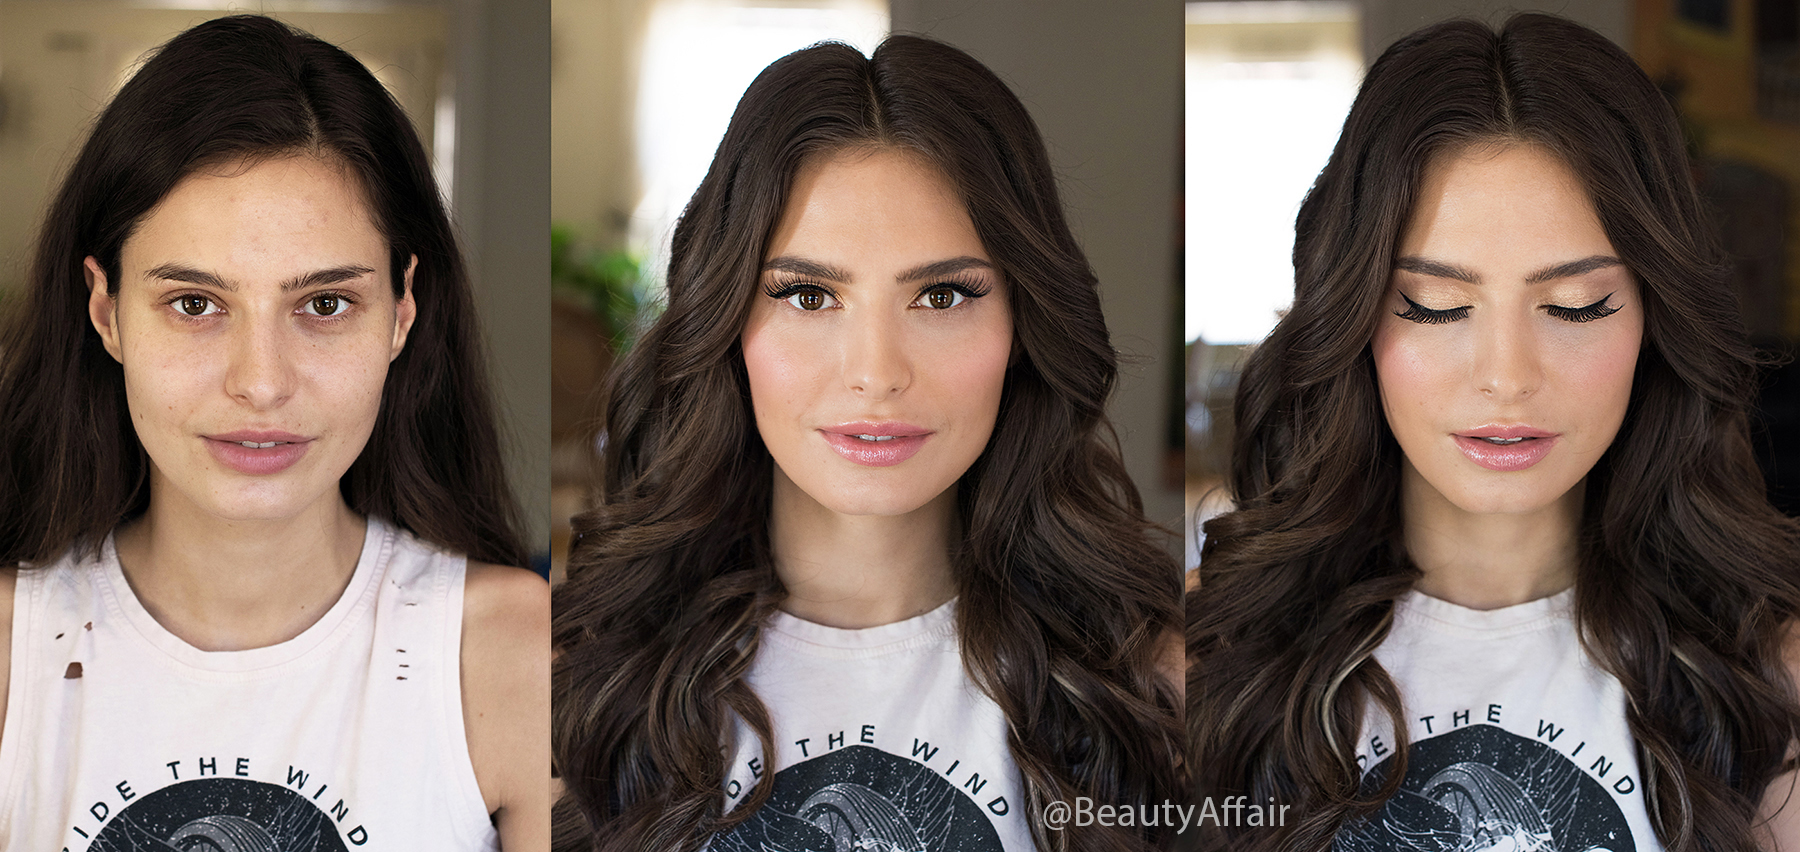 airbrush before and after Temptu Makeup and waves glam hair bronze goddess straight hair Beauty Affair-Recovered copy copy.jpg